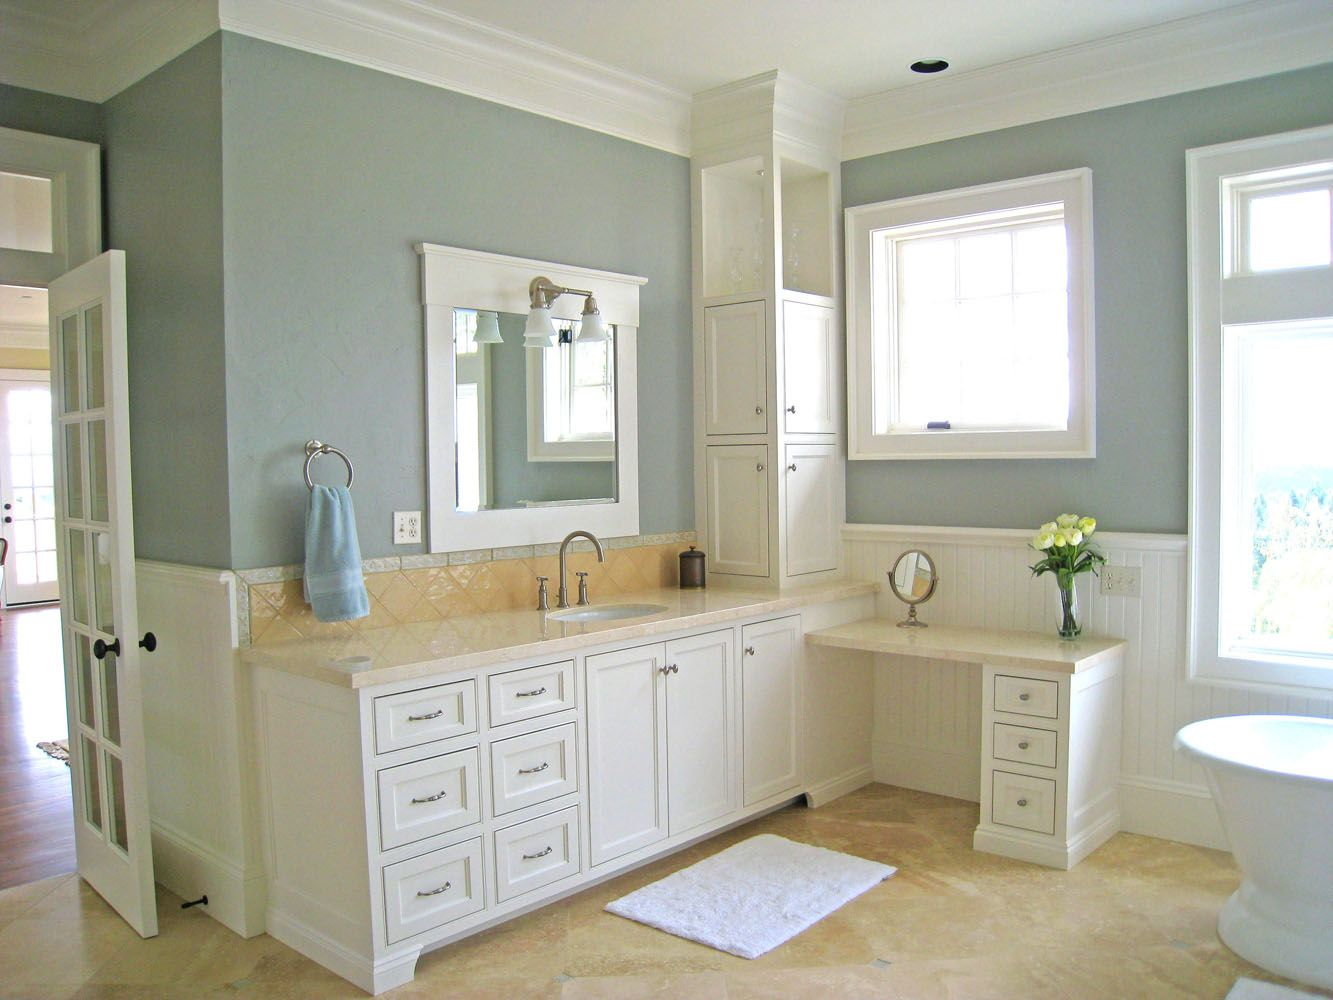 Bathroom Painting Ideas Light And Airy Bathroom Painting Ideas  Ideas  Interactive